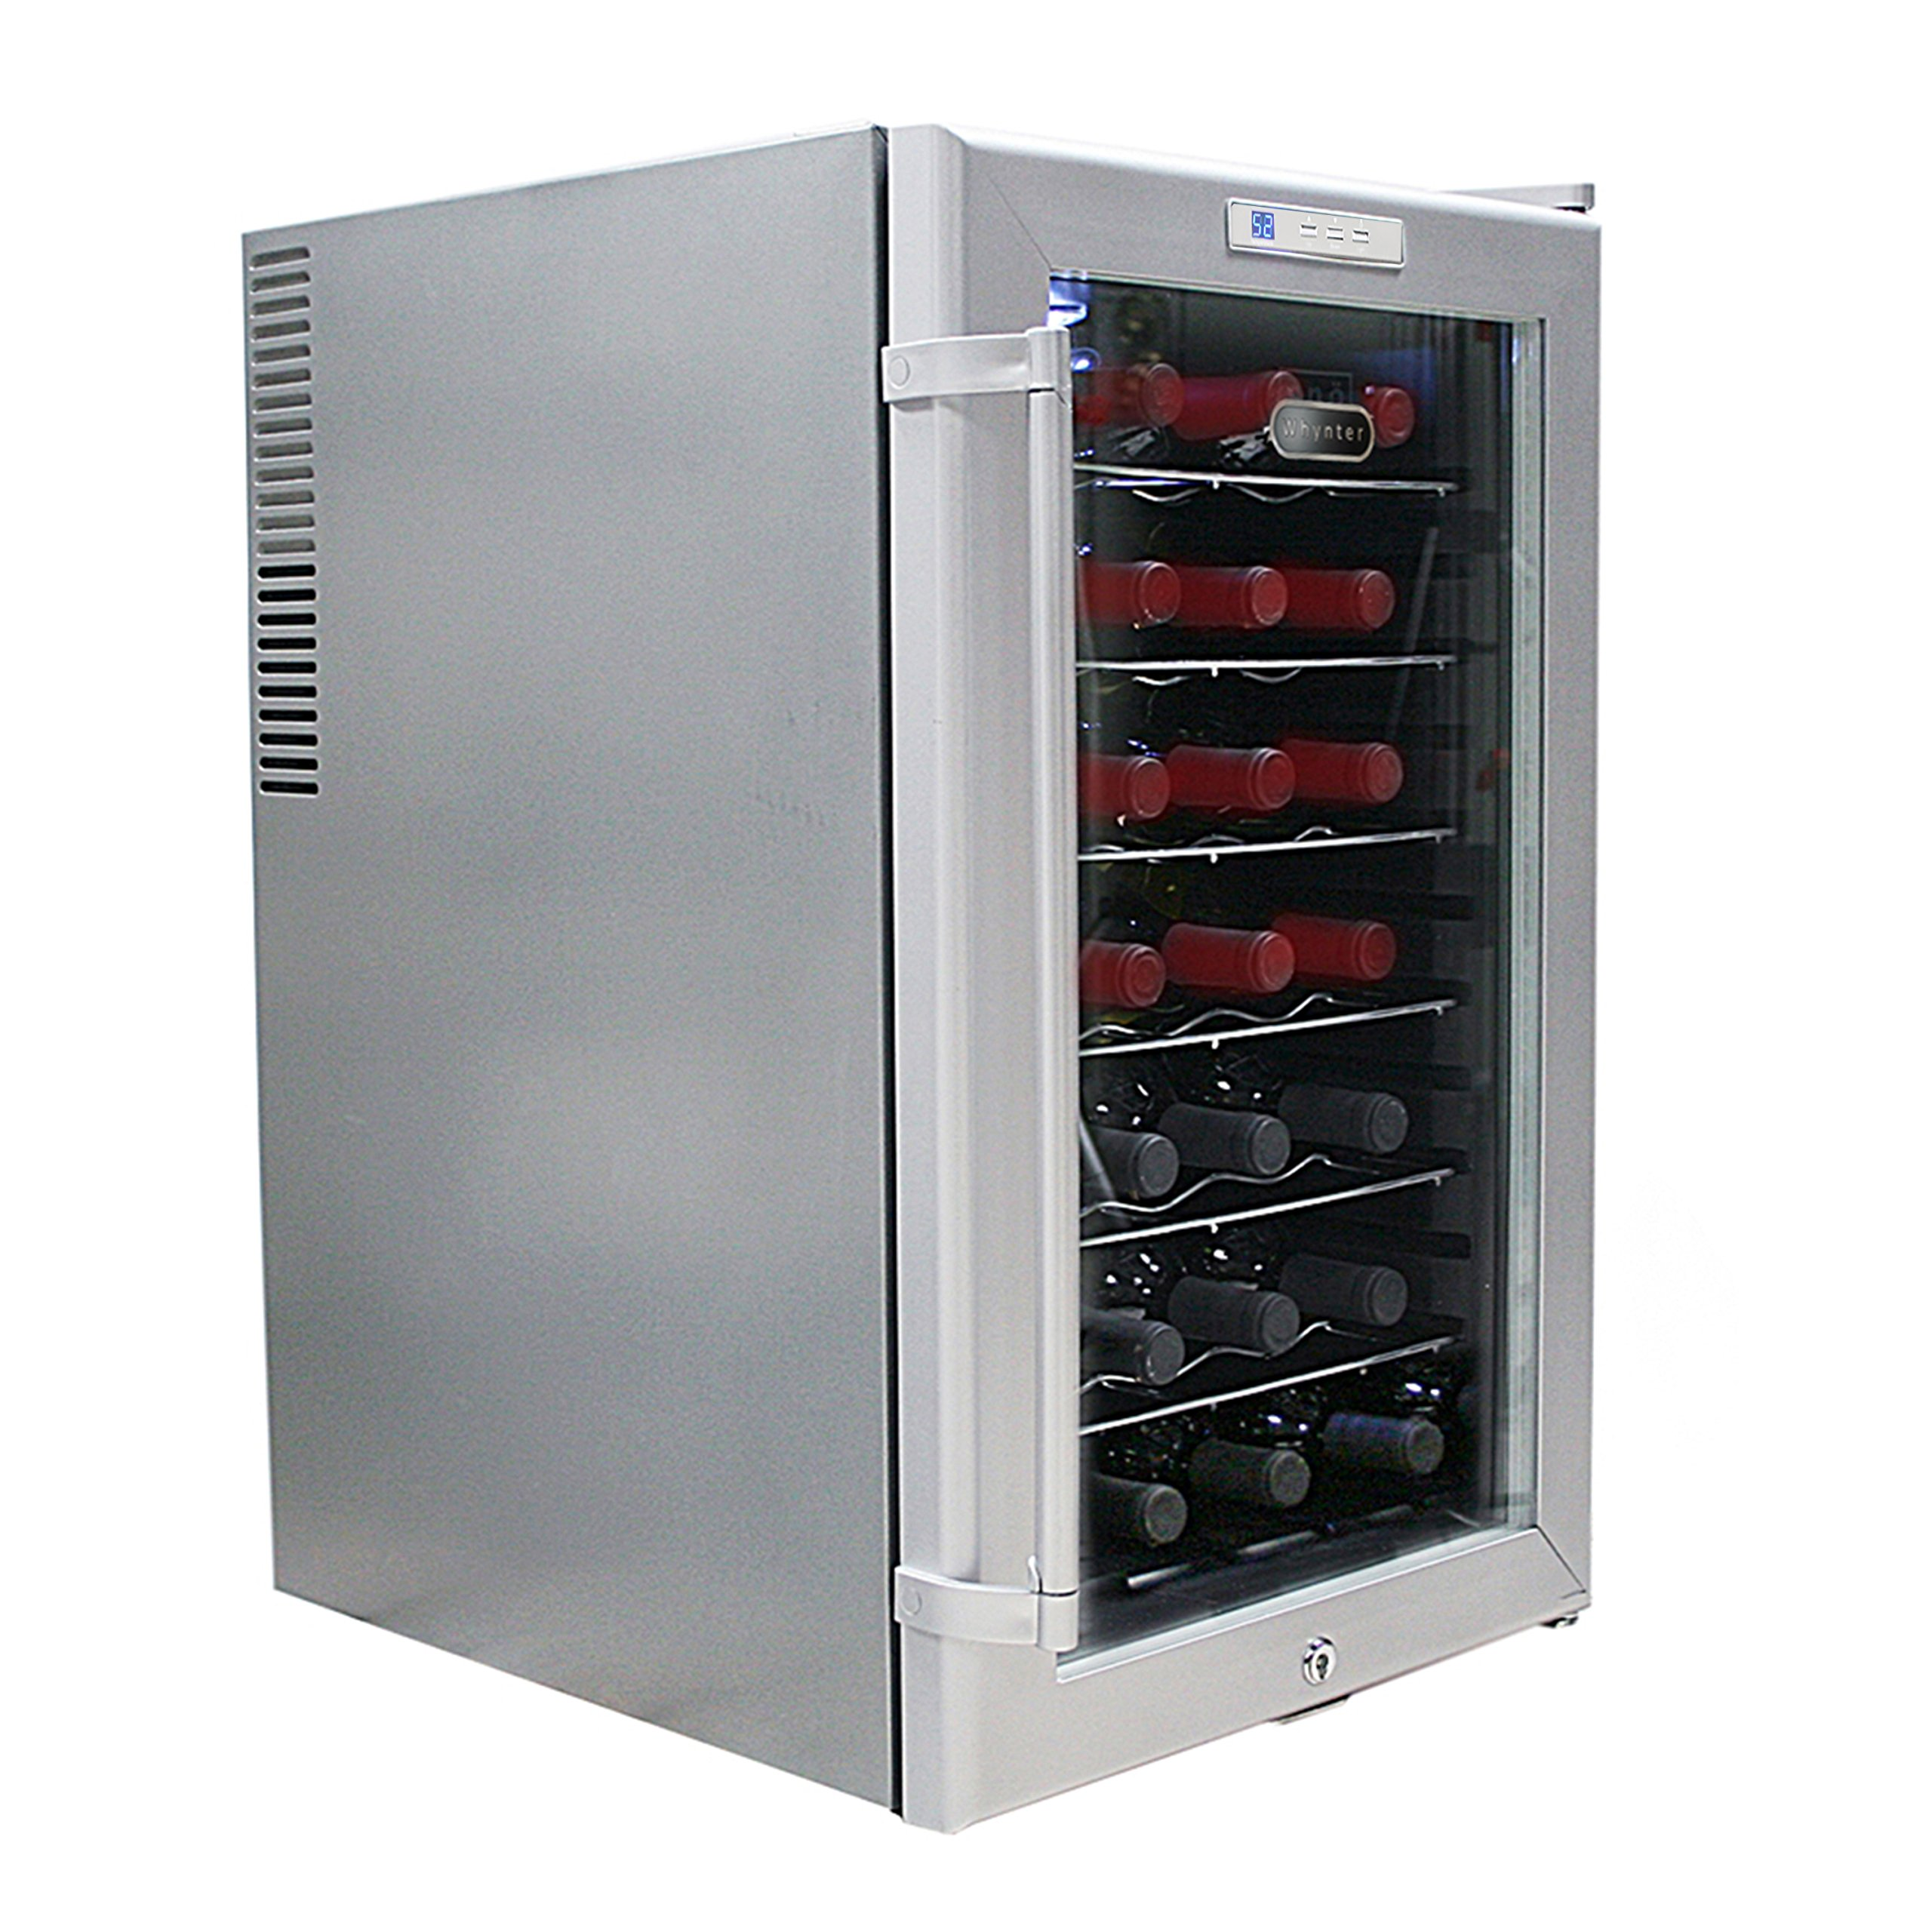 Whynter WC28S SNO 28 Bottle Wine Cooler, Platinum with Lock by Whynter (Image #4)